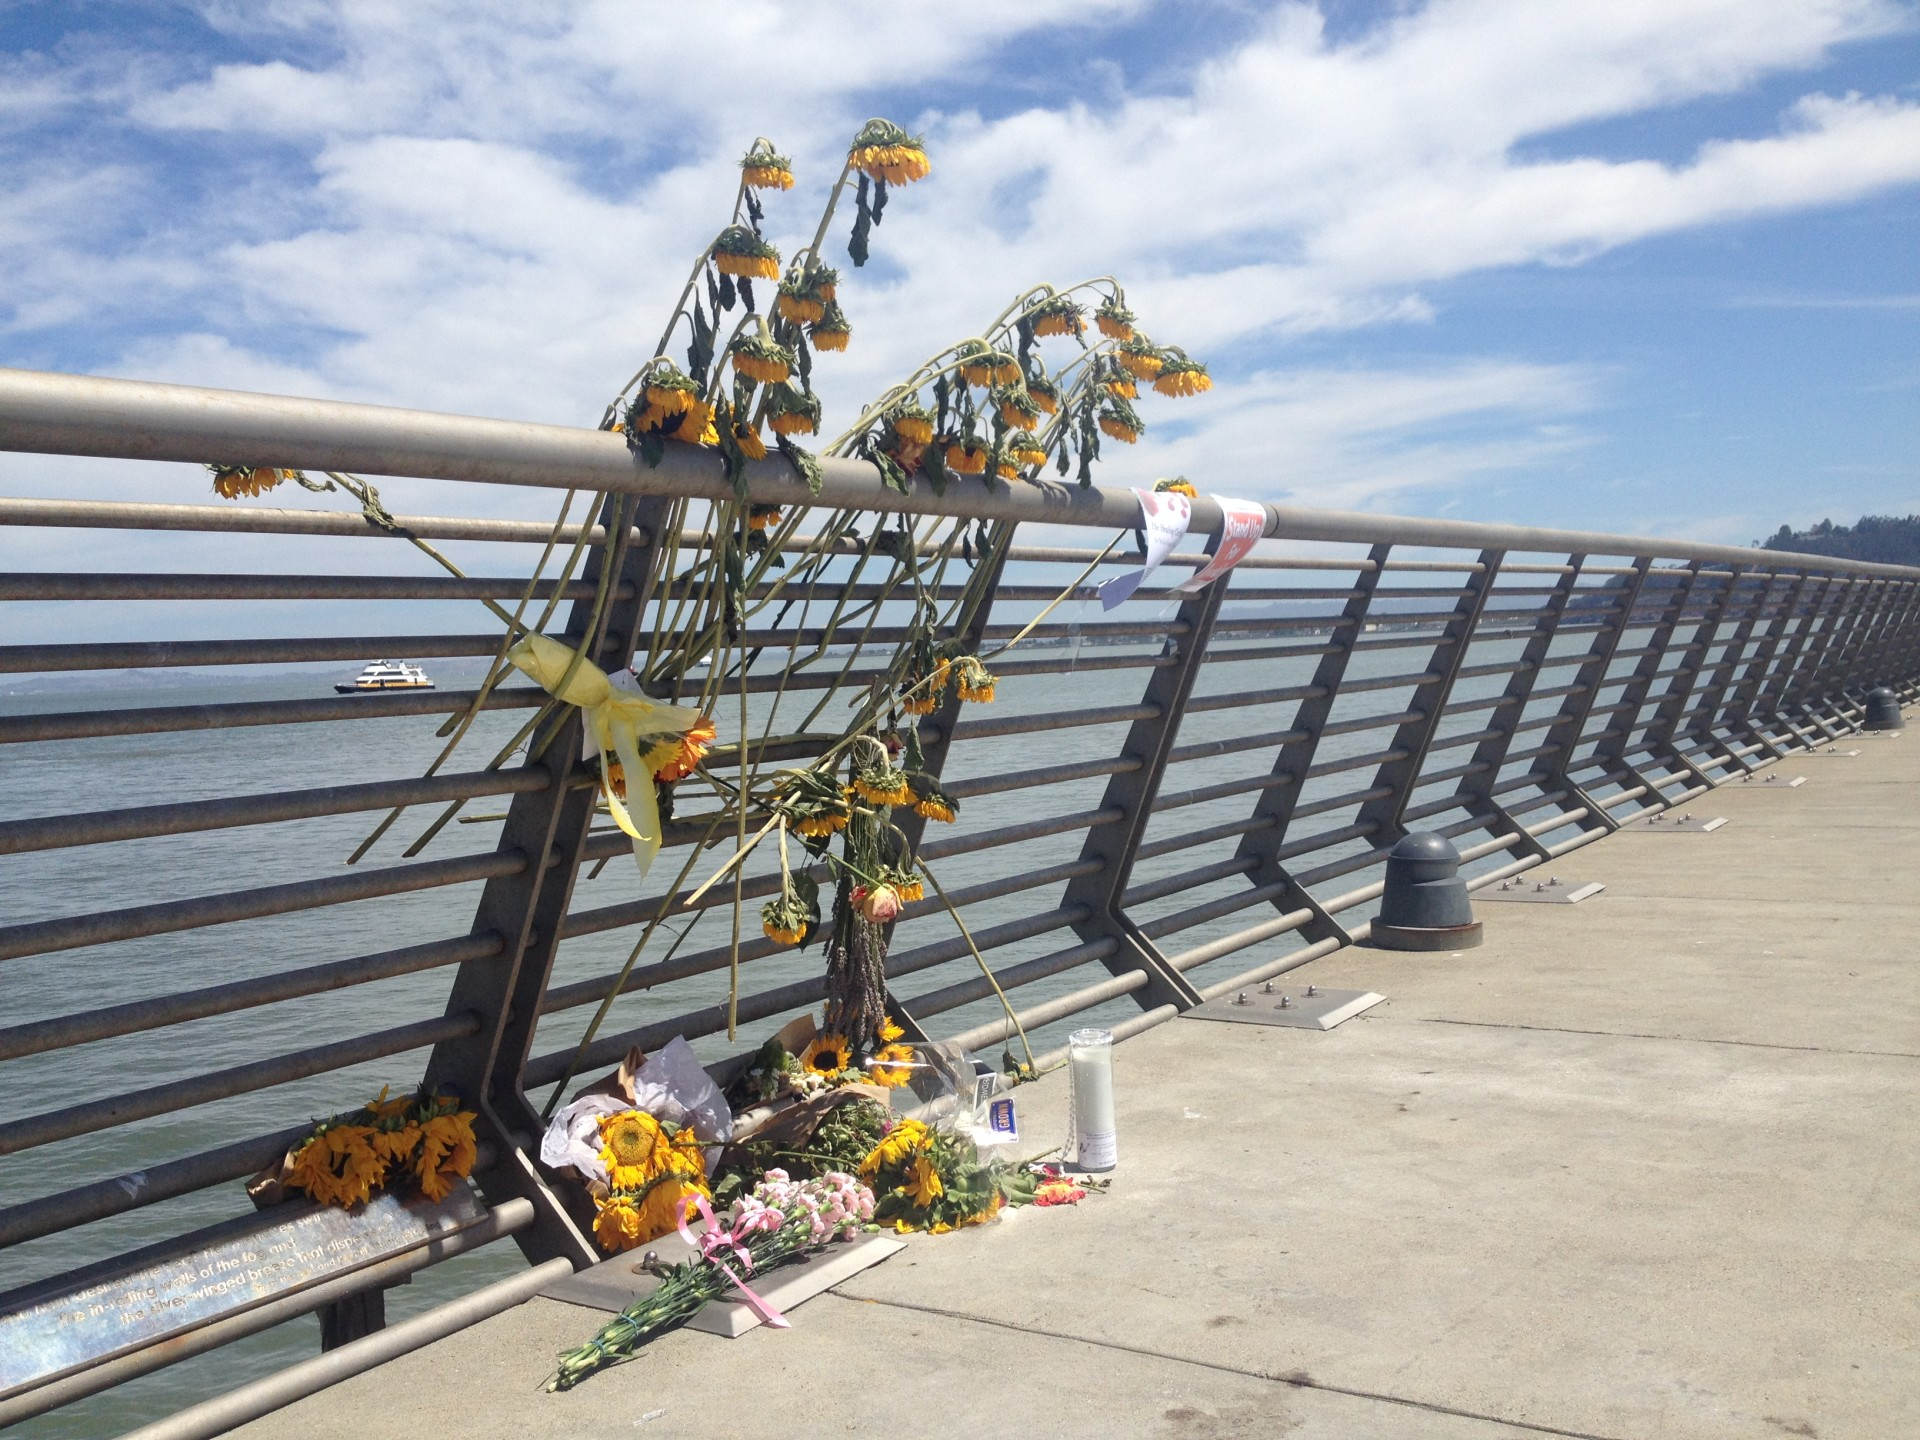 A memorial for Kate Steinle on San Francisco's Pier 14, where she was fatally shot on July 1.